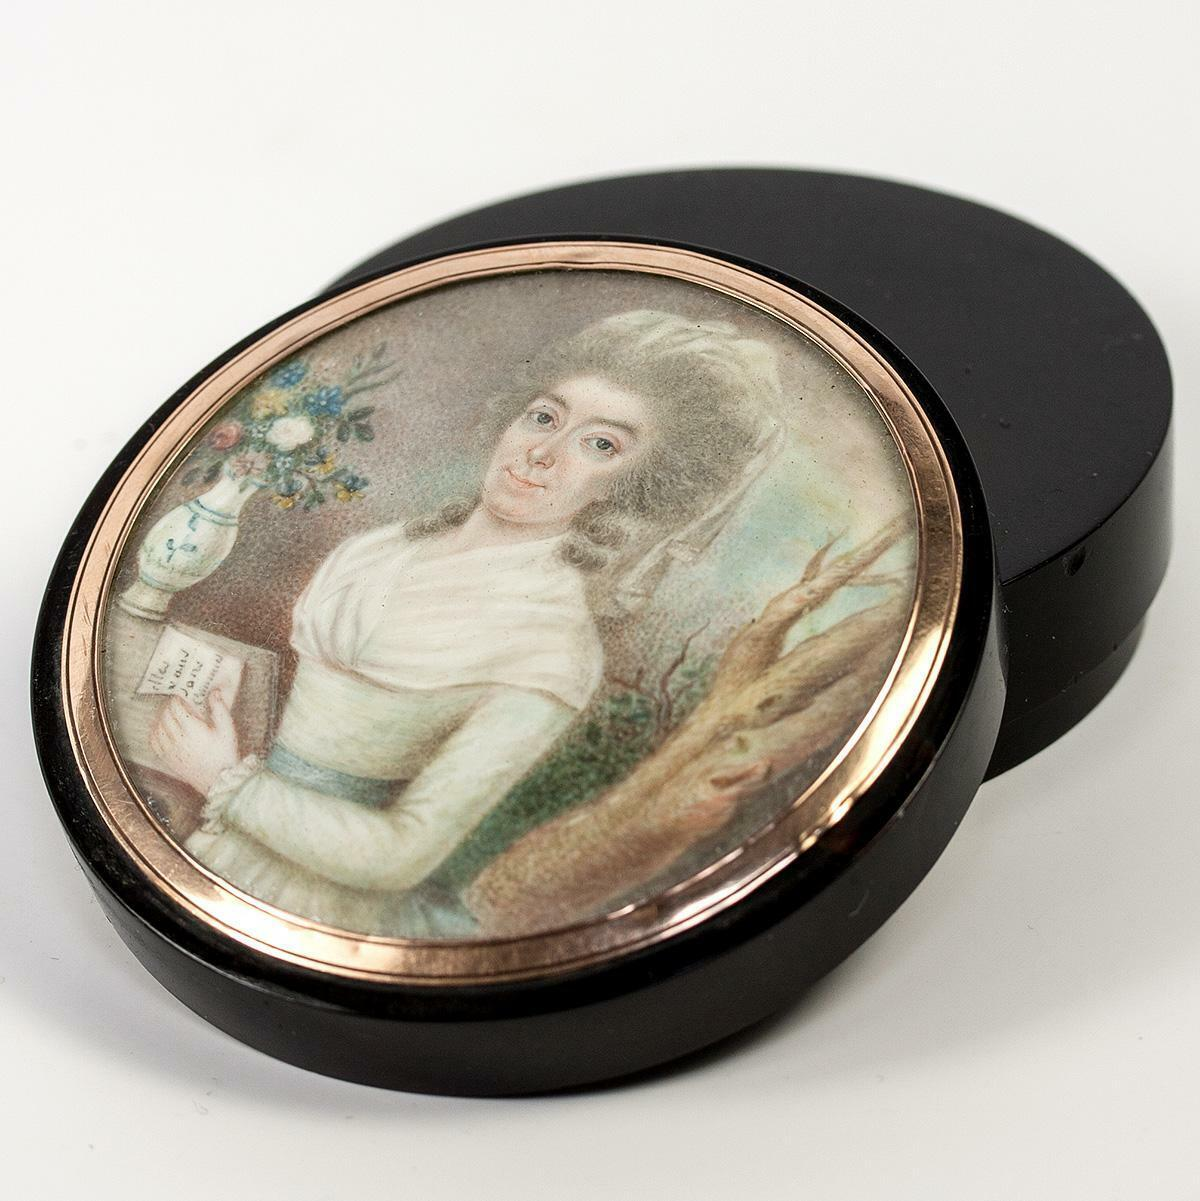 Antique French Snuff Box, Portrait Miniature Painting, 18k Gold Frame c1780-1810